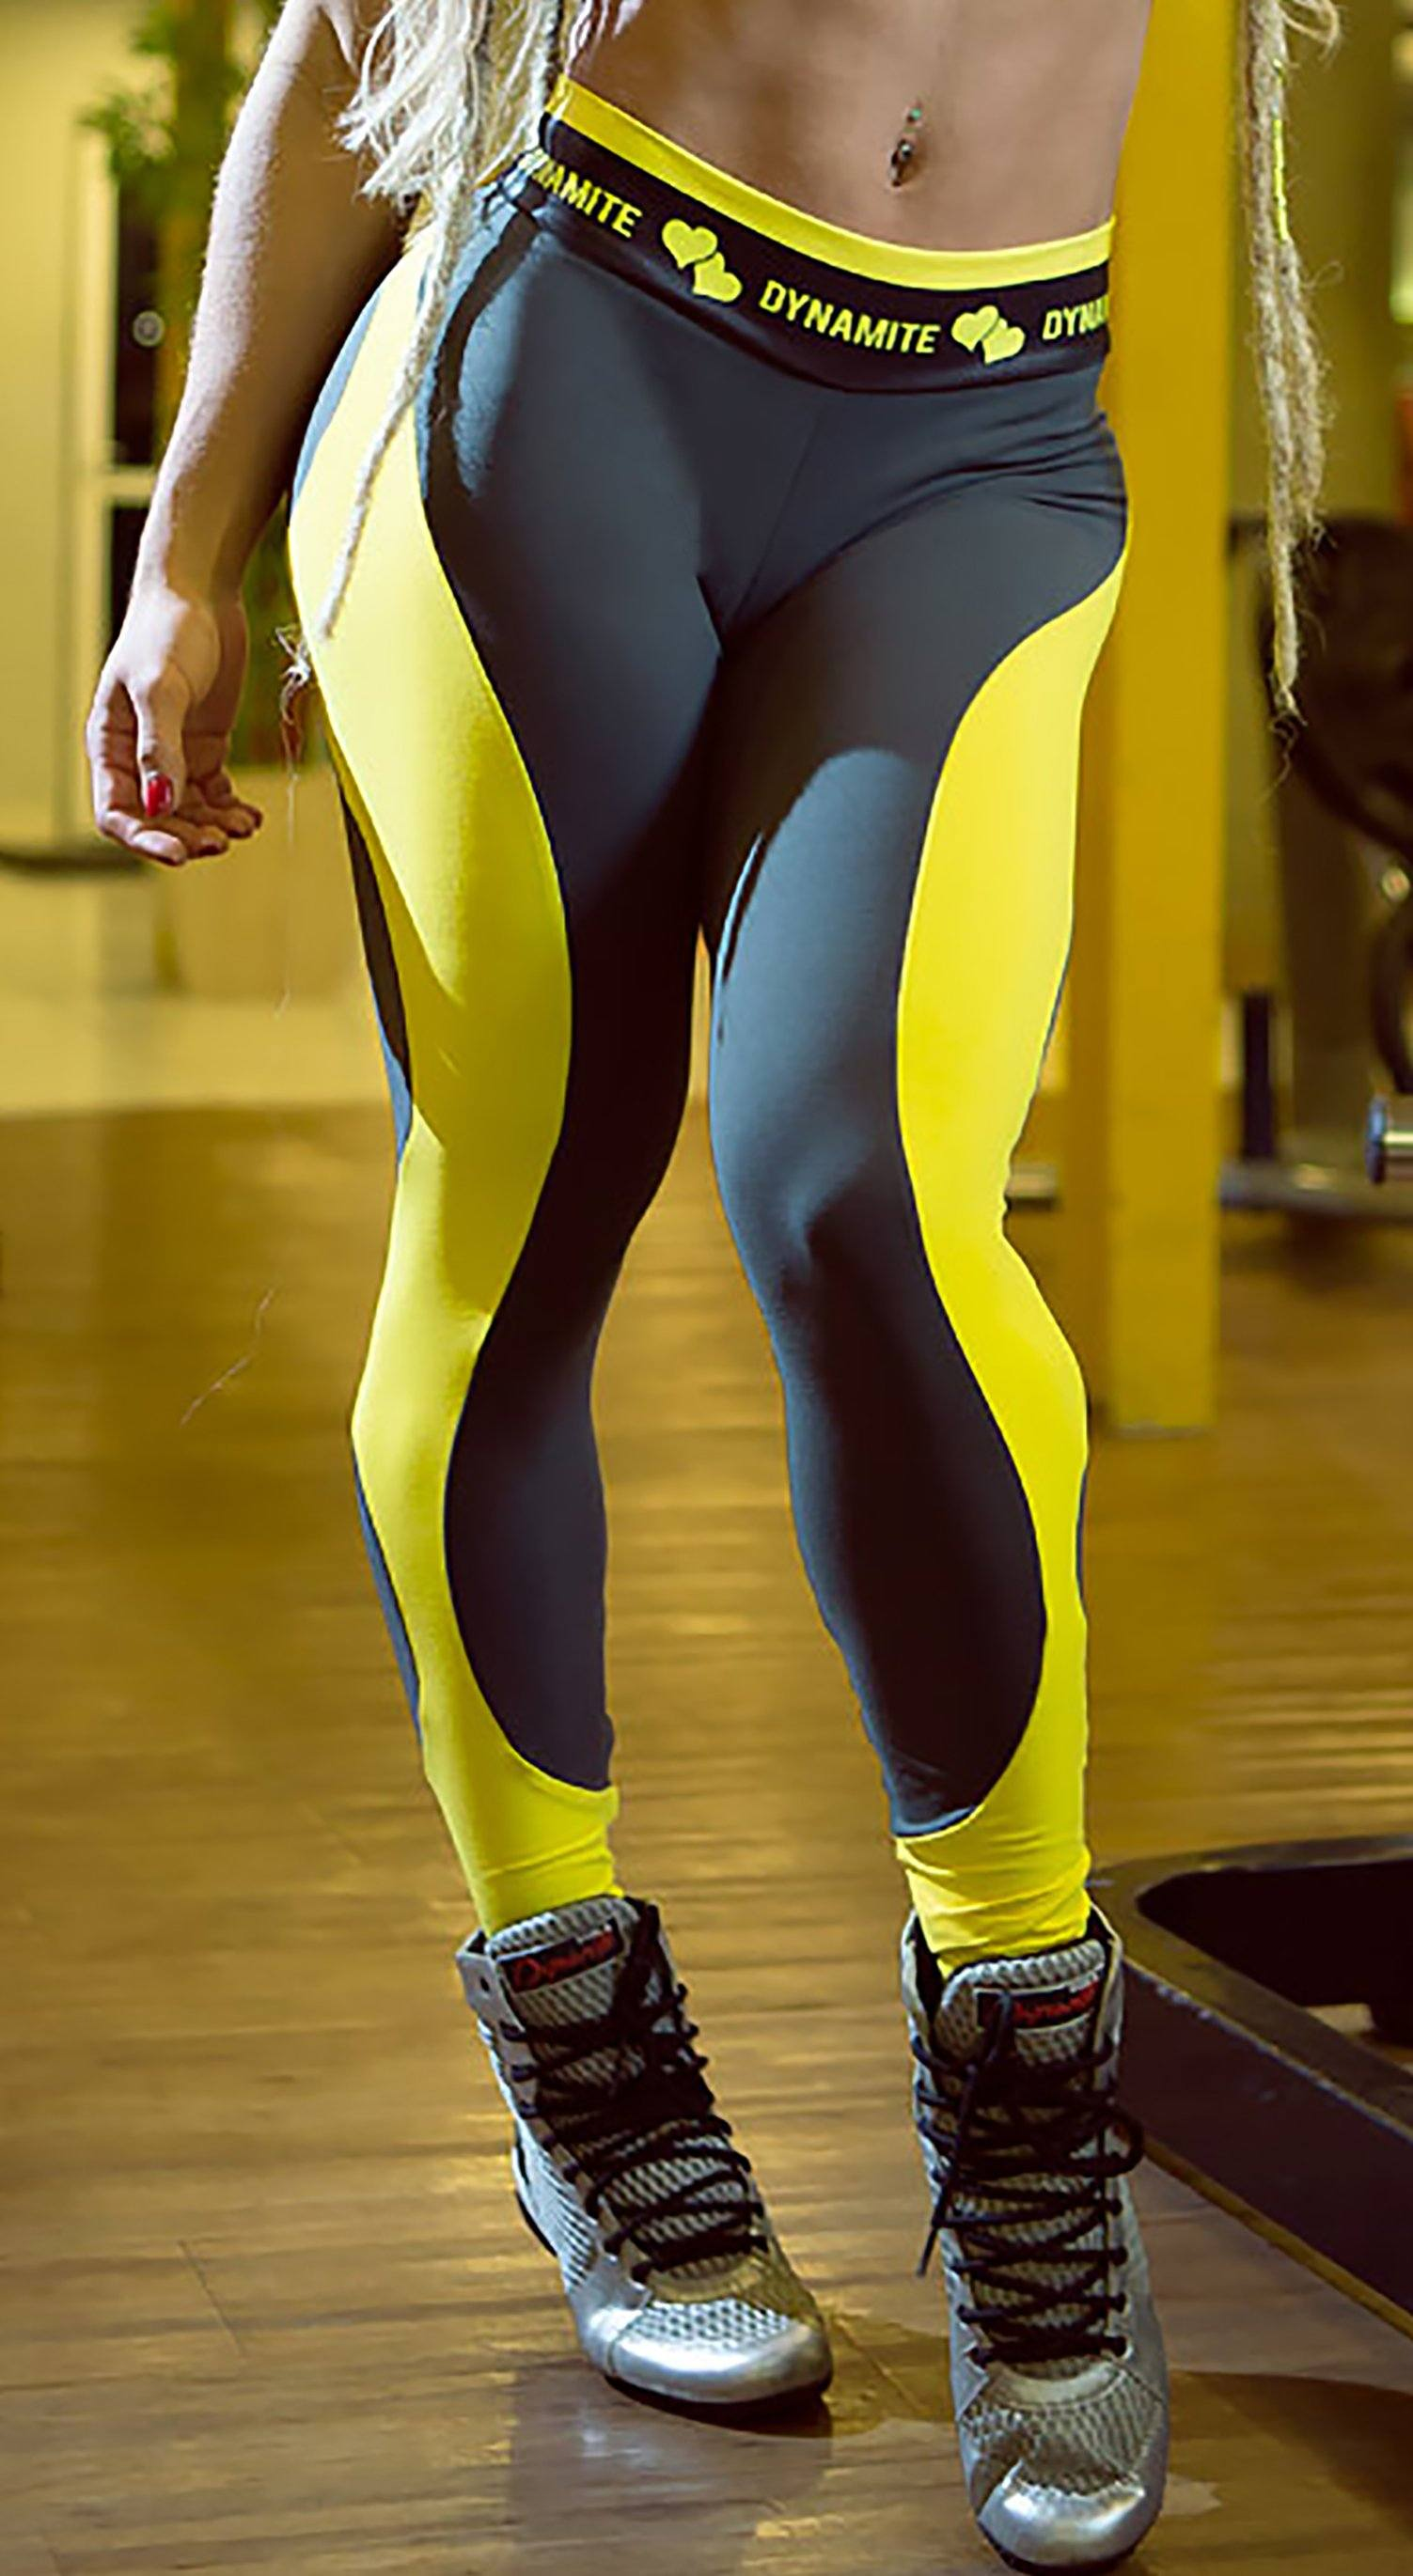 fd724d55651a4 Brazilian Workout Legging | Apple Booty Splendid | Top Rio Shop